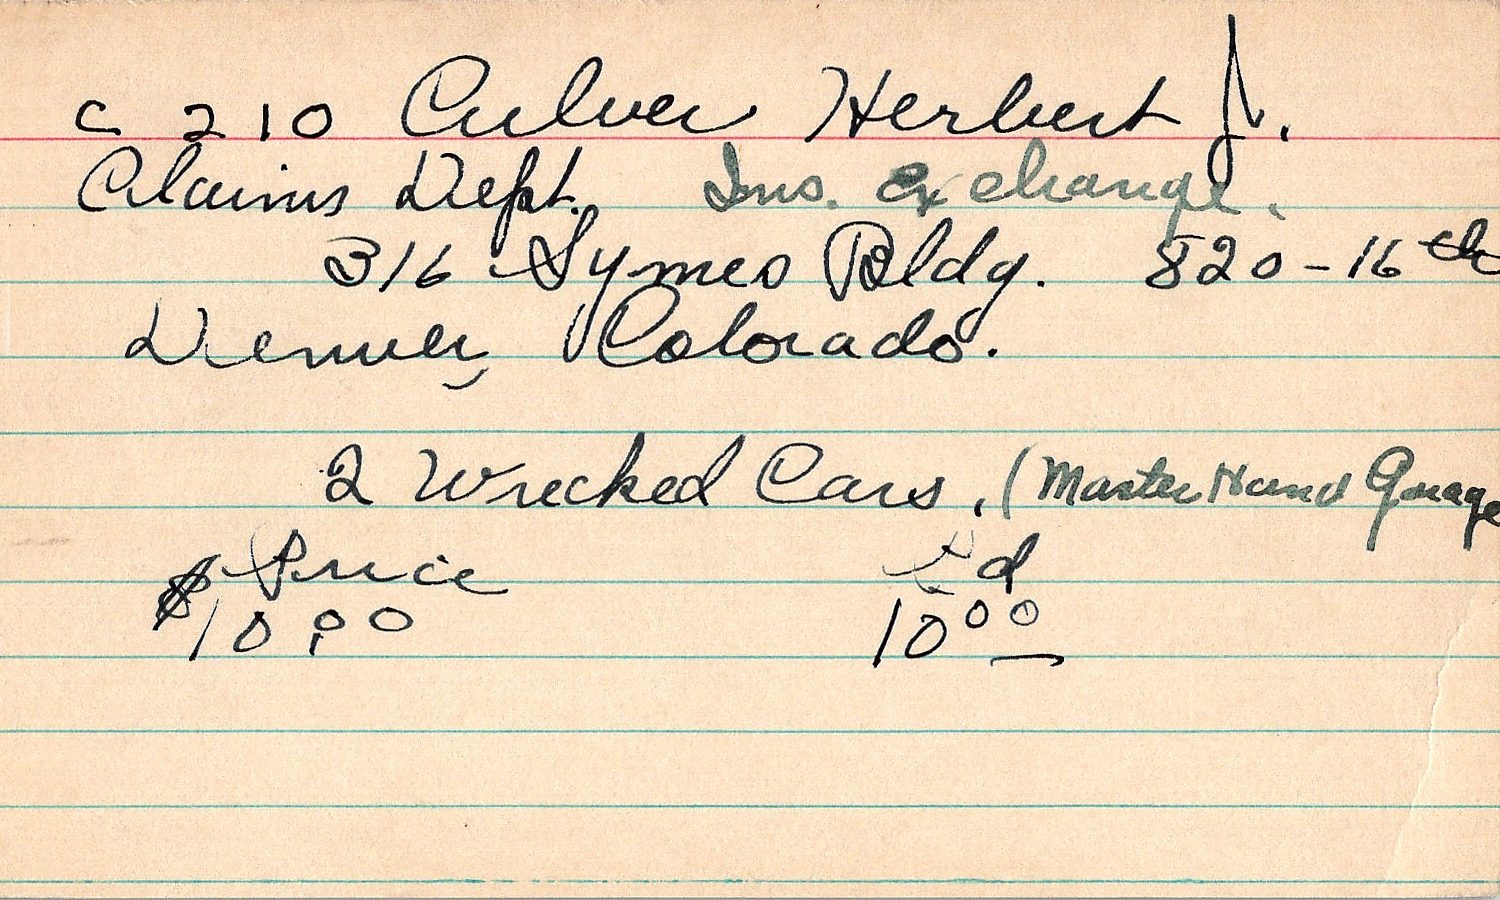 Index card for Herbert J. Culver